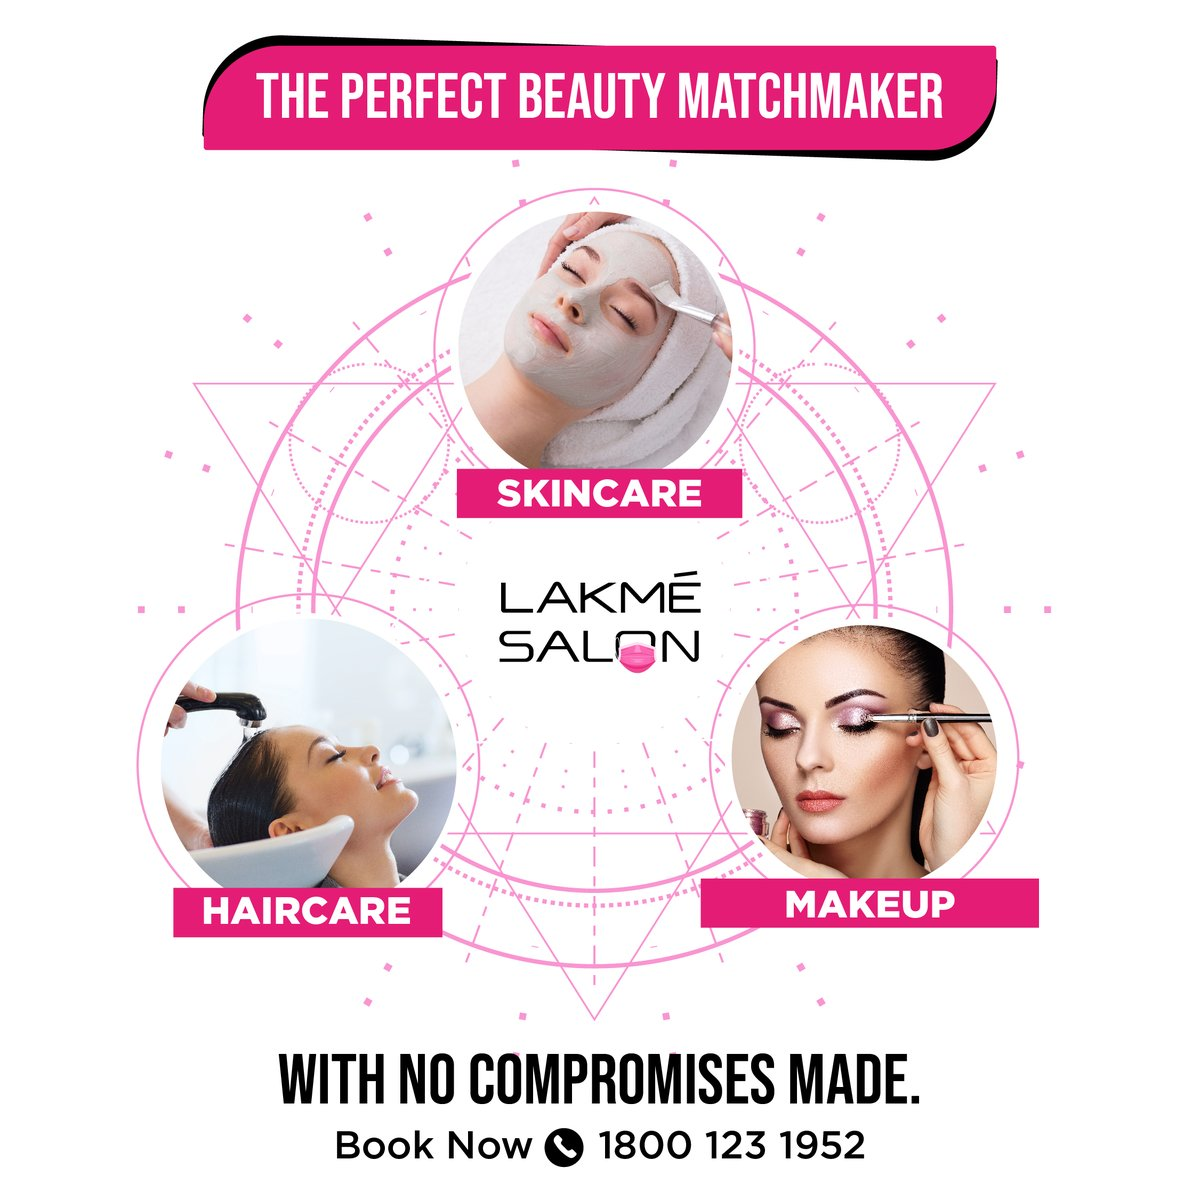 Looking for the right beauty partner? 😵 We've got you covered.📞 us on 1800-123-1952 or download the Lakmé Salon App  . #matchmaking #indianmatchmaking #beauty #lakmesalon #beautyneeds #haircareneeds #booknow #skincareneeds #pamper #nocompromise #selfcare #beautypartner #beauty https://t.co/C25e9PHDSC